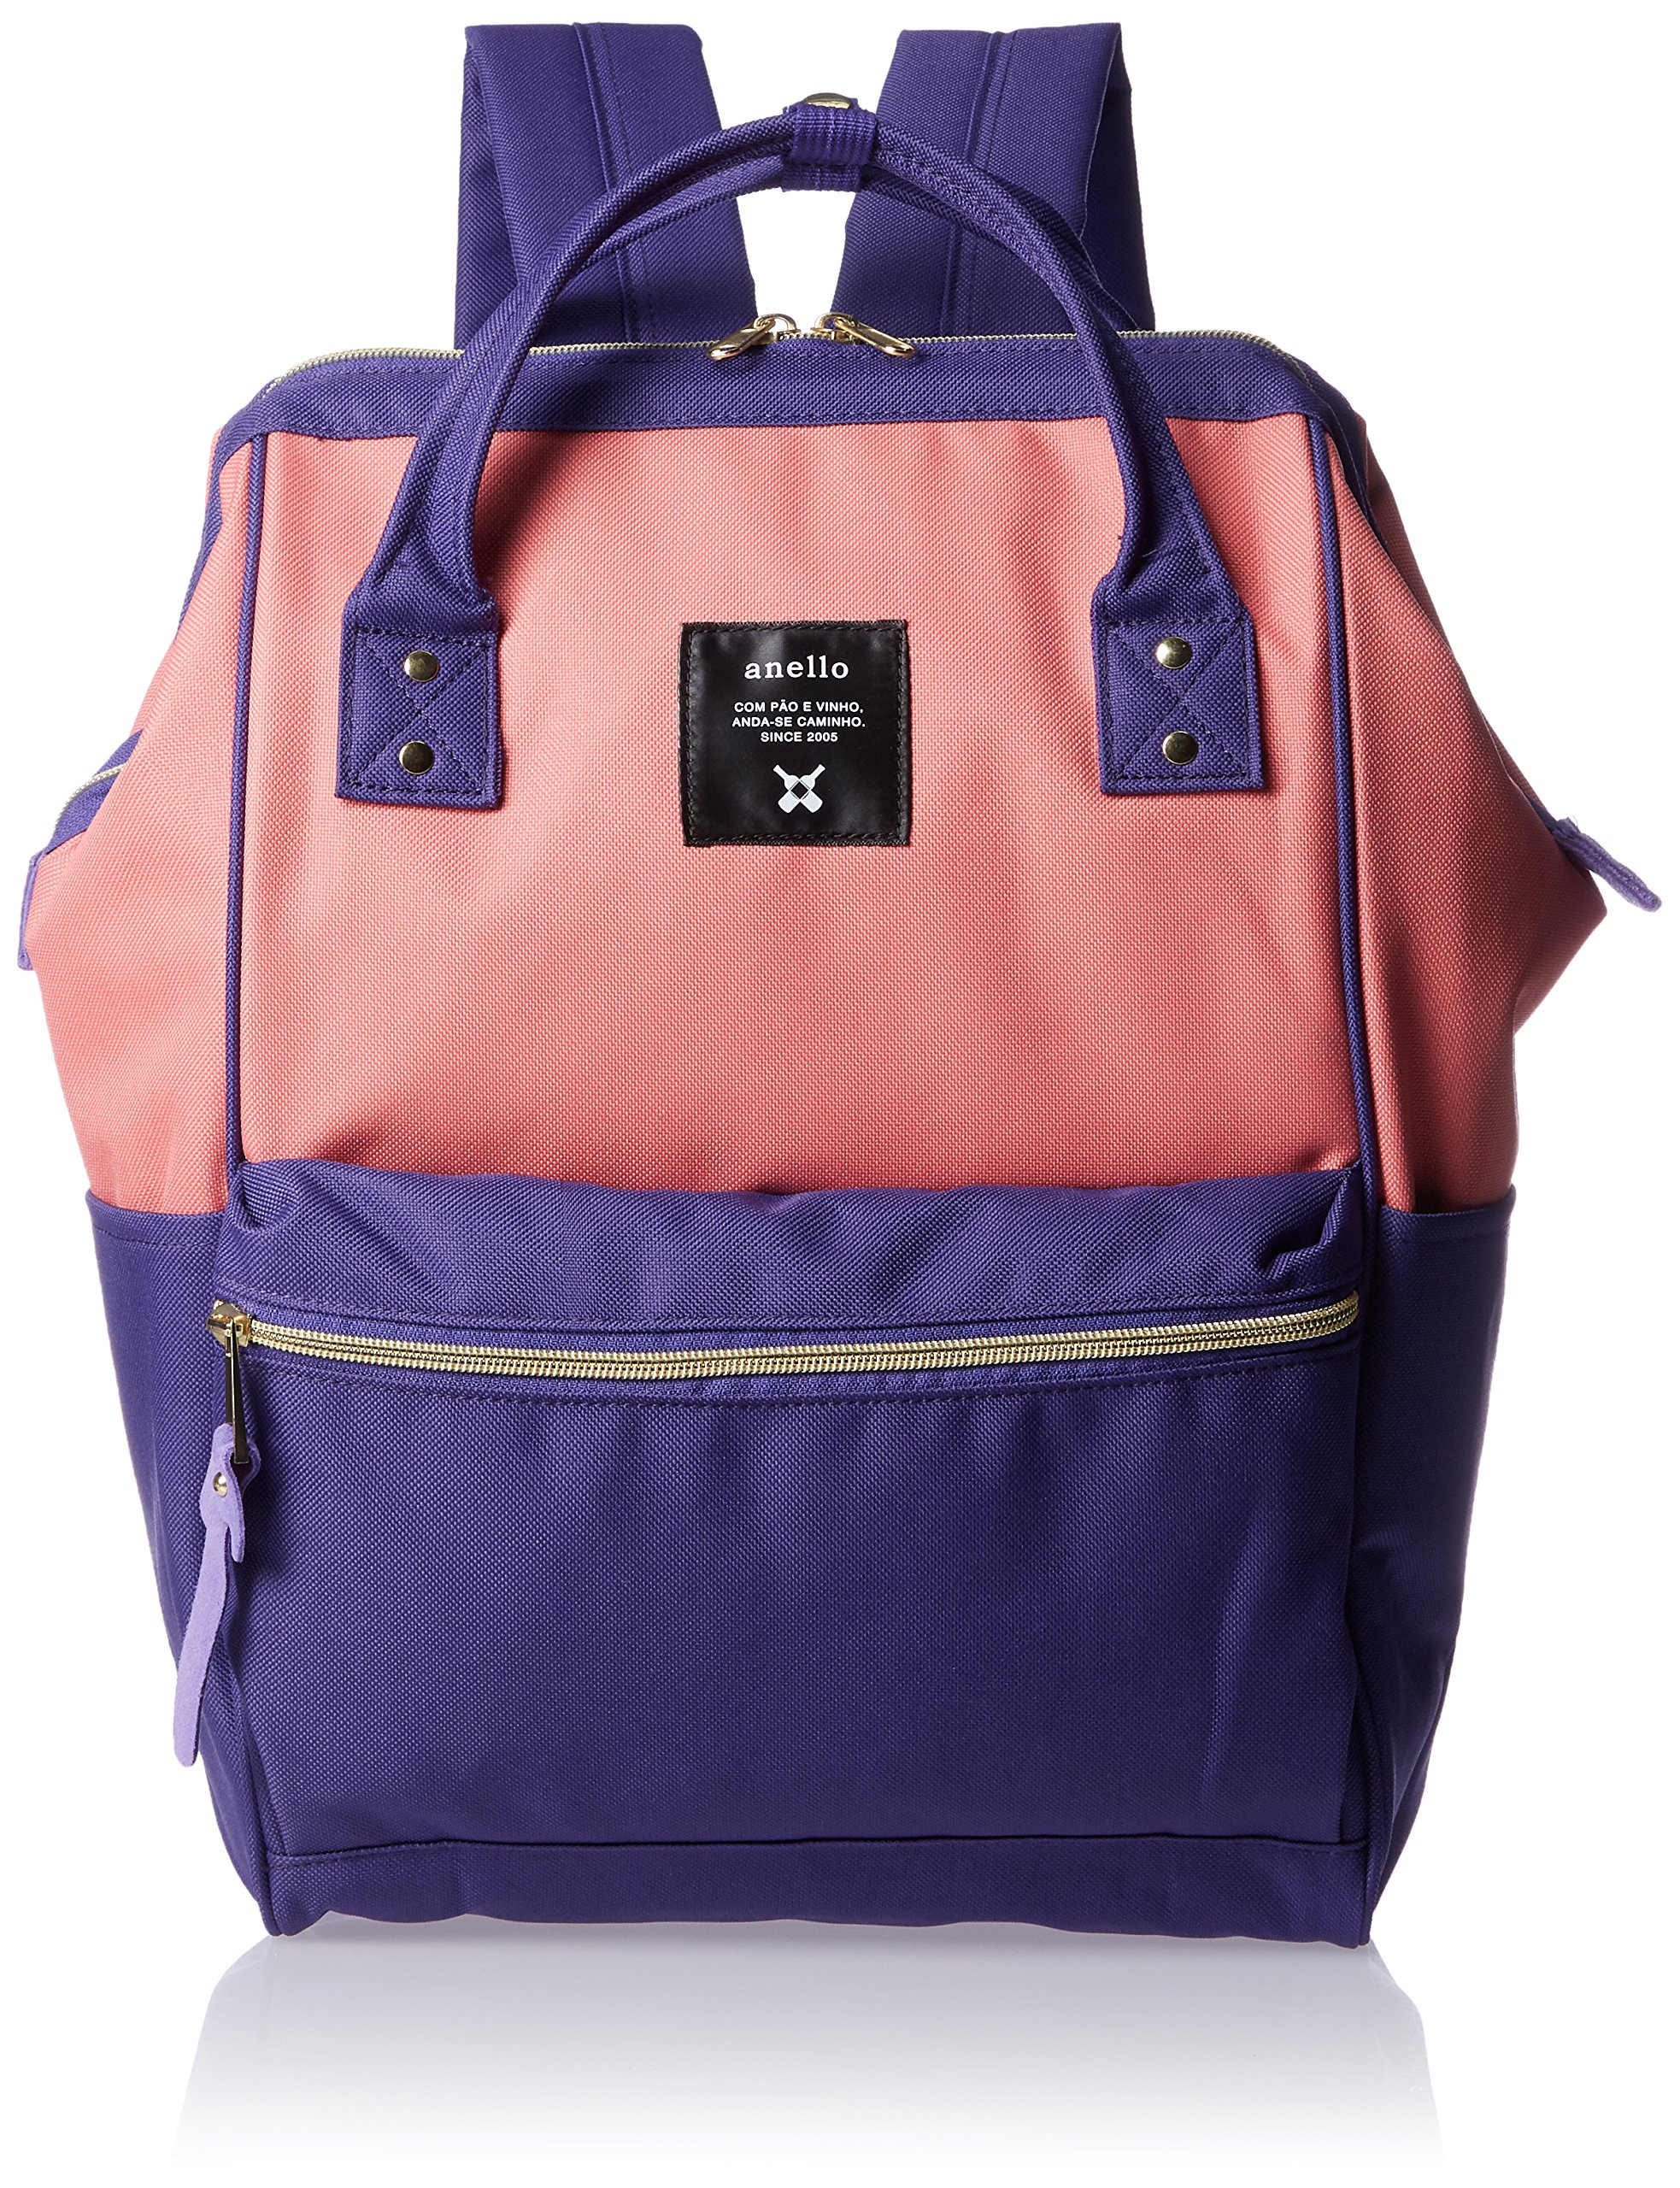 Anello Official Pink-Purple Japan Fashion Shoulder Rucksack Backpack Hand Carry Tablet Diaper Bag Unisex